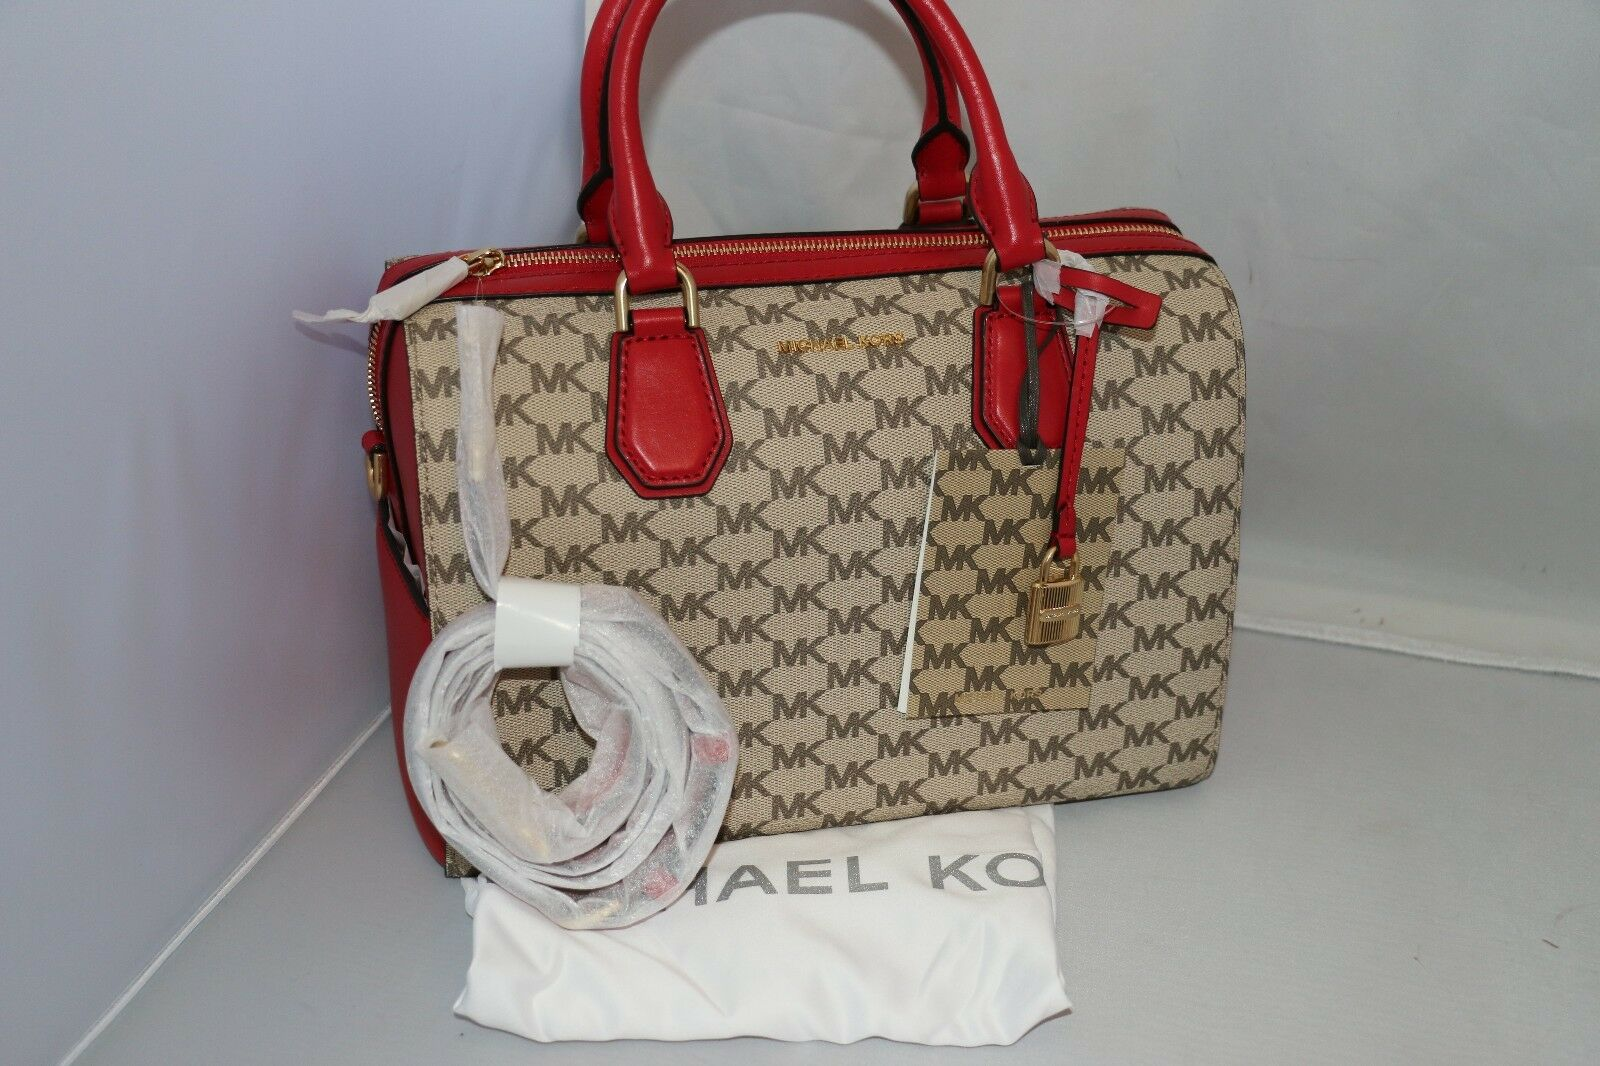 aa2d88c05977 Michael Kors Studio Natural Bright Red Mercer MD Duffle Satchel ...